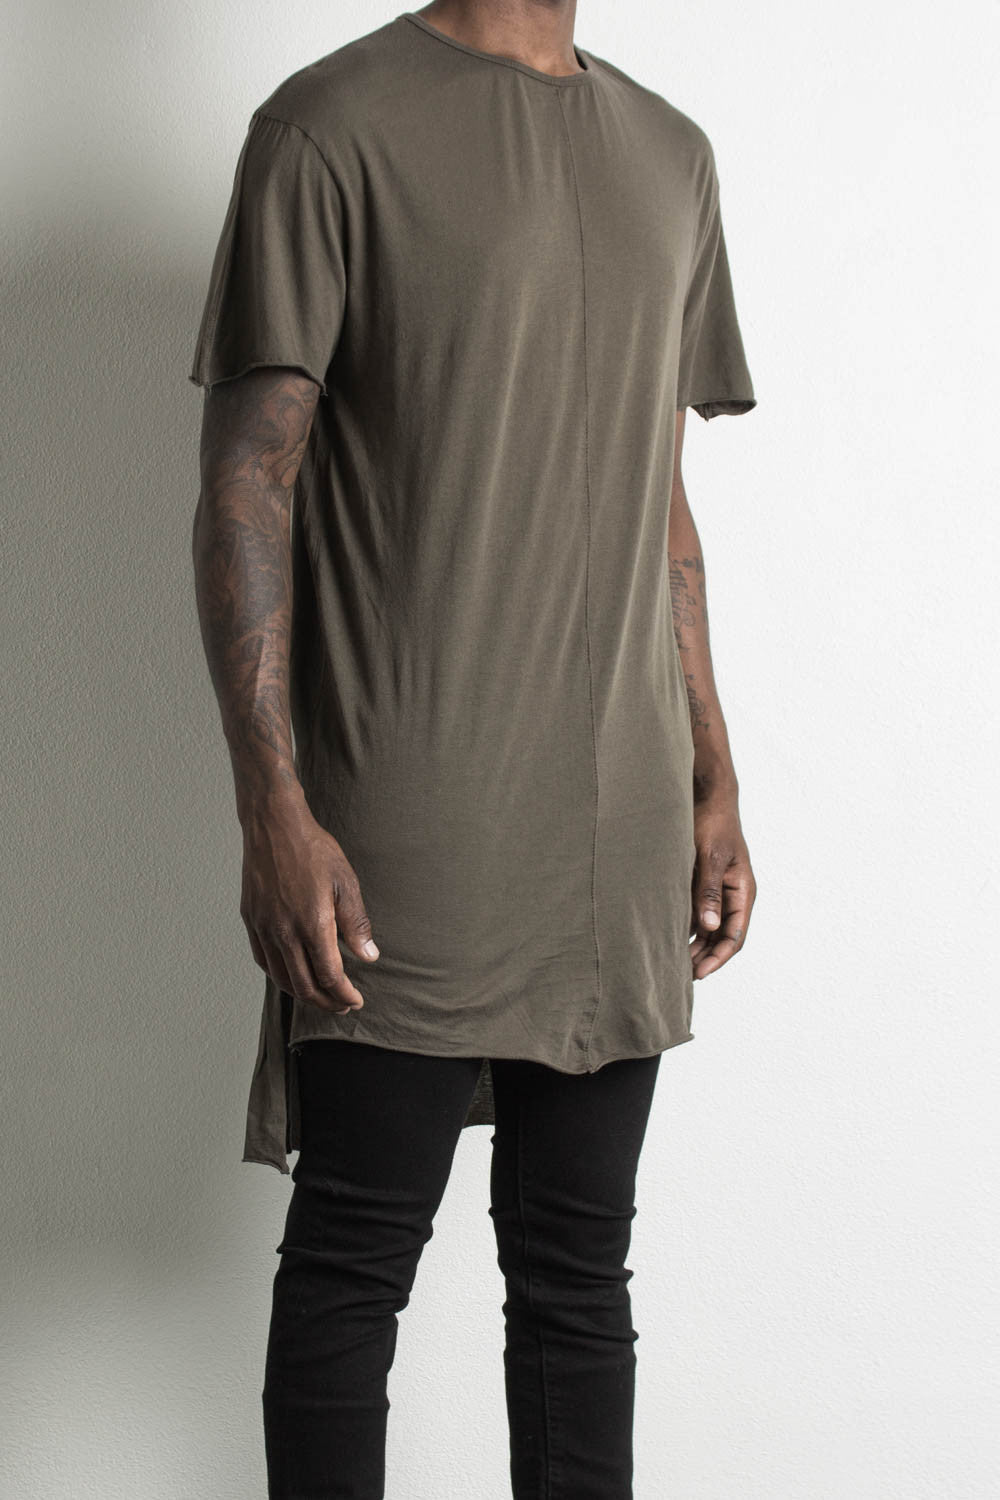 long tail t-shirt by daniel patrick in army